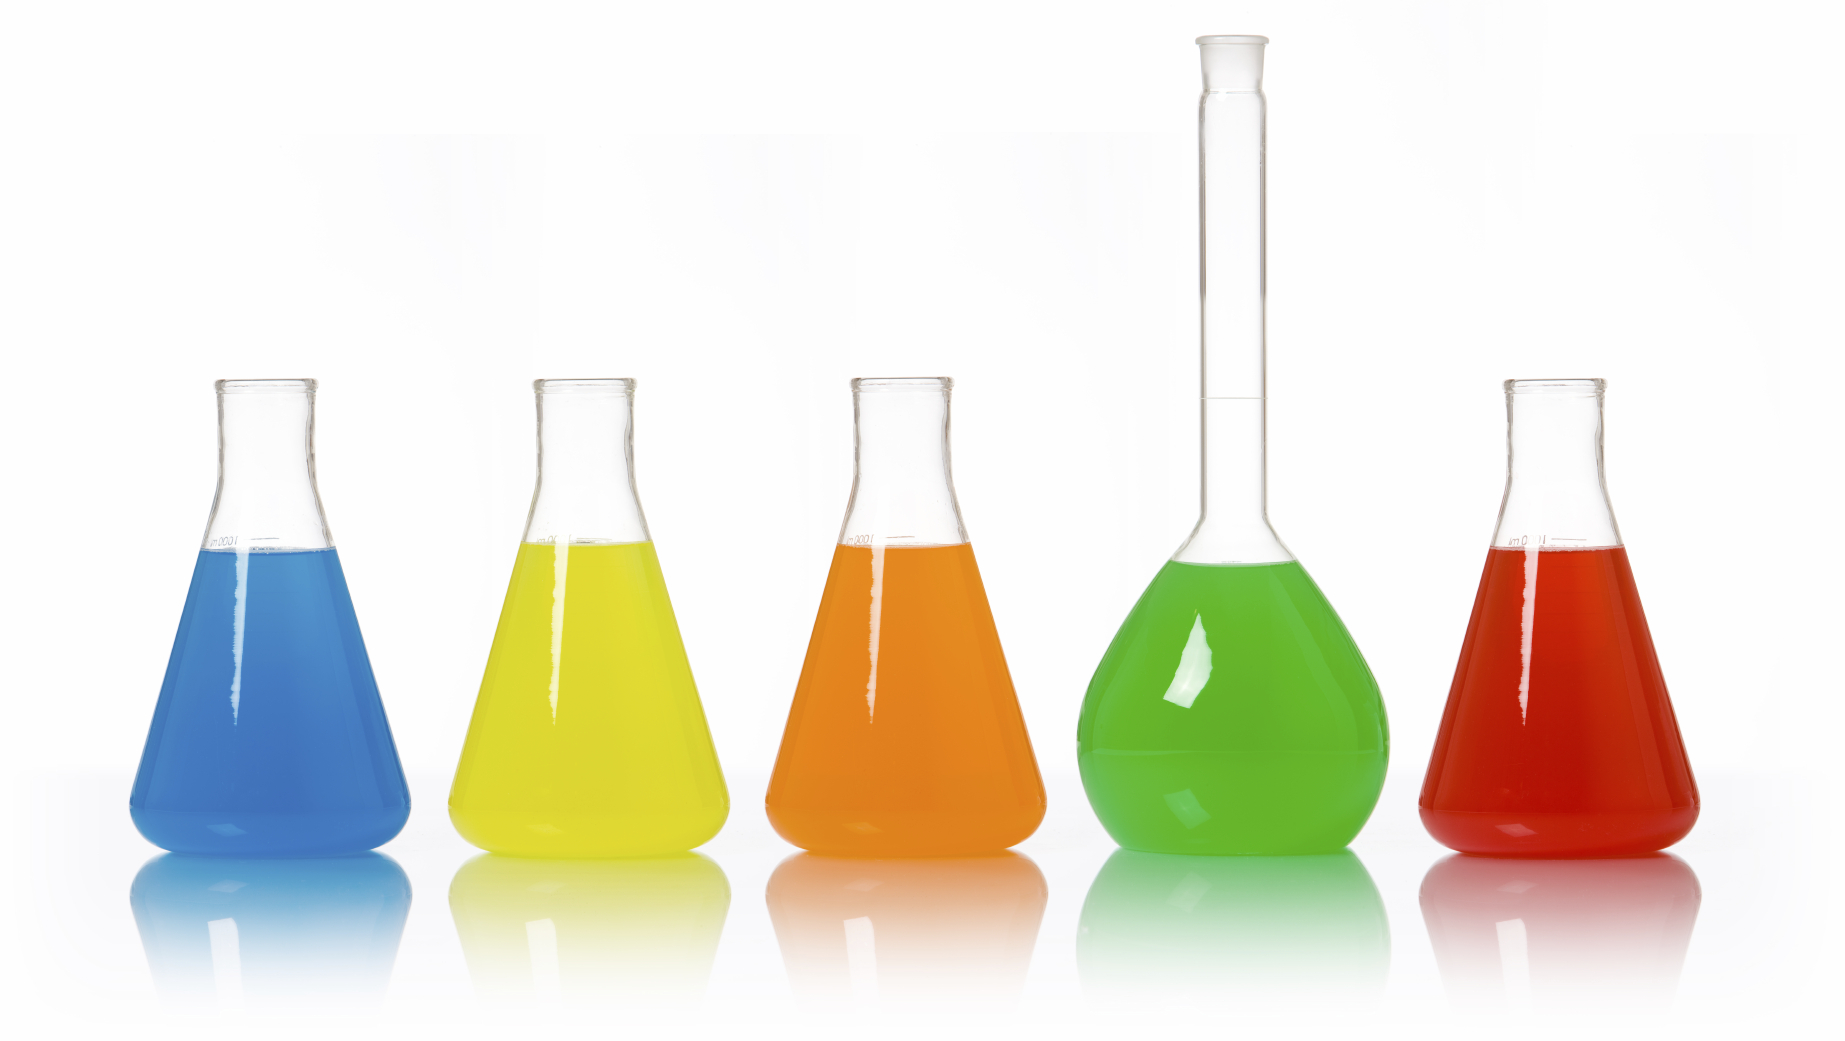 Chemical clipart vial. Colorful chemistry beaker